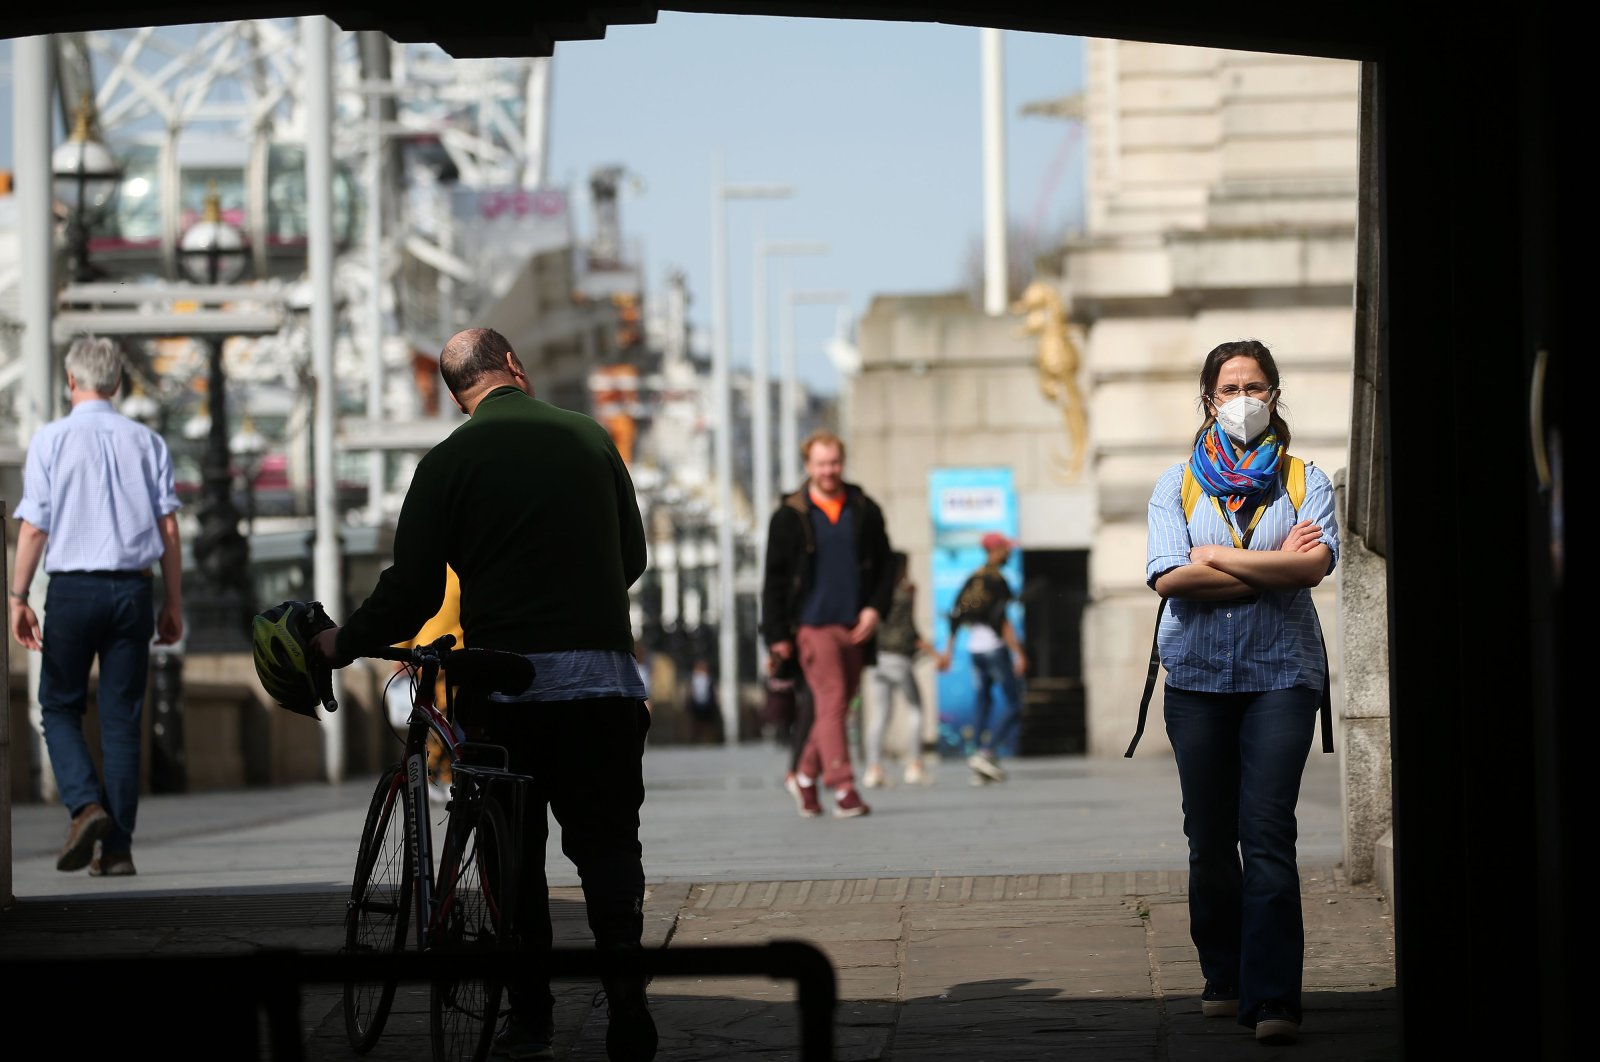 A woman wearing a face mask as a precautionary measure against COVID-19, walks past a cyclist on the South Bank, by the River Thames in central London on April 7, 2020, as life in Britain continues during the nationwide lockdown to combat the novel coronavirus pandemic. (AFP Photo)